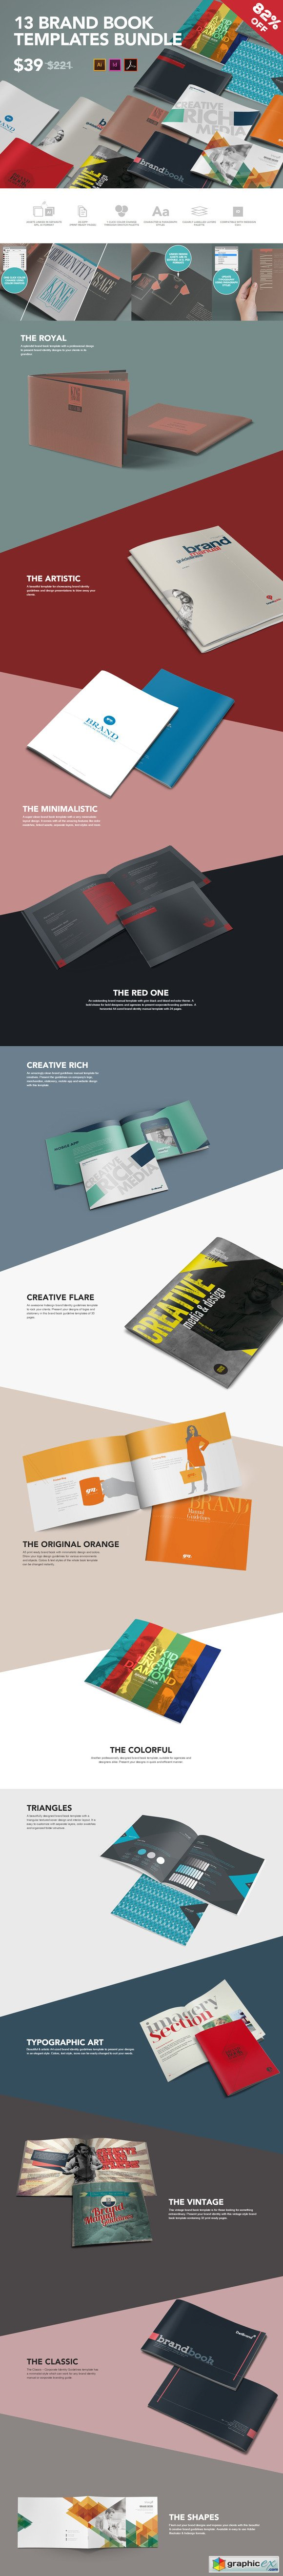 13 Brand Guidelines Templates Bundle